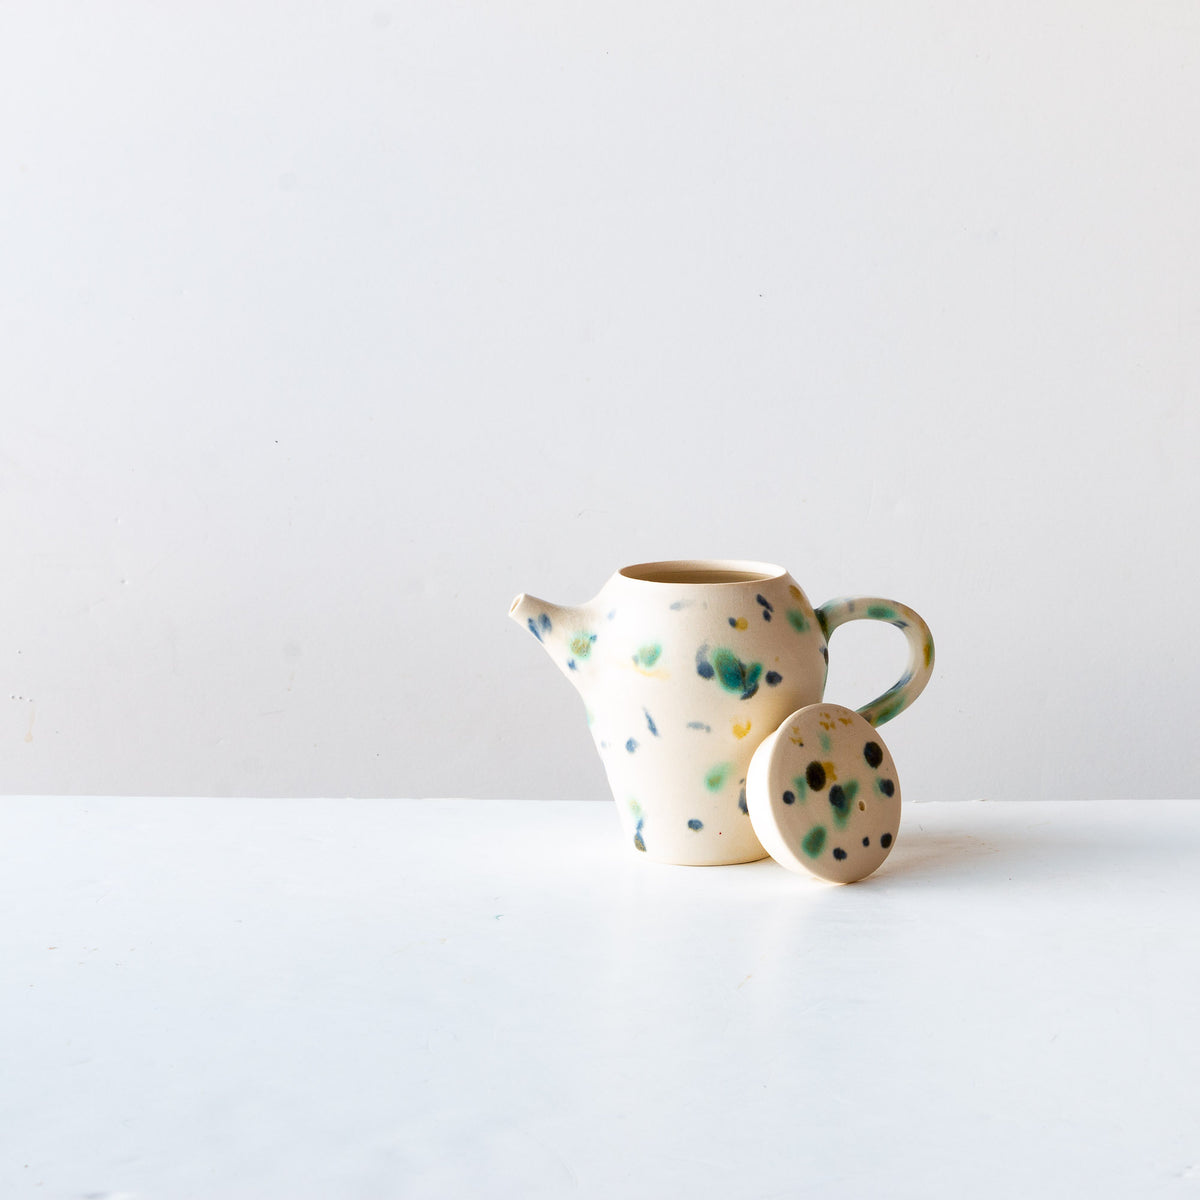 Hanabira - Small Handmade Ceramic Teapot With Lid - Sold by Chic & Basta